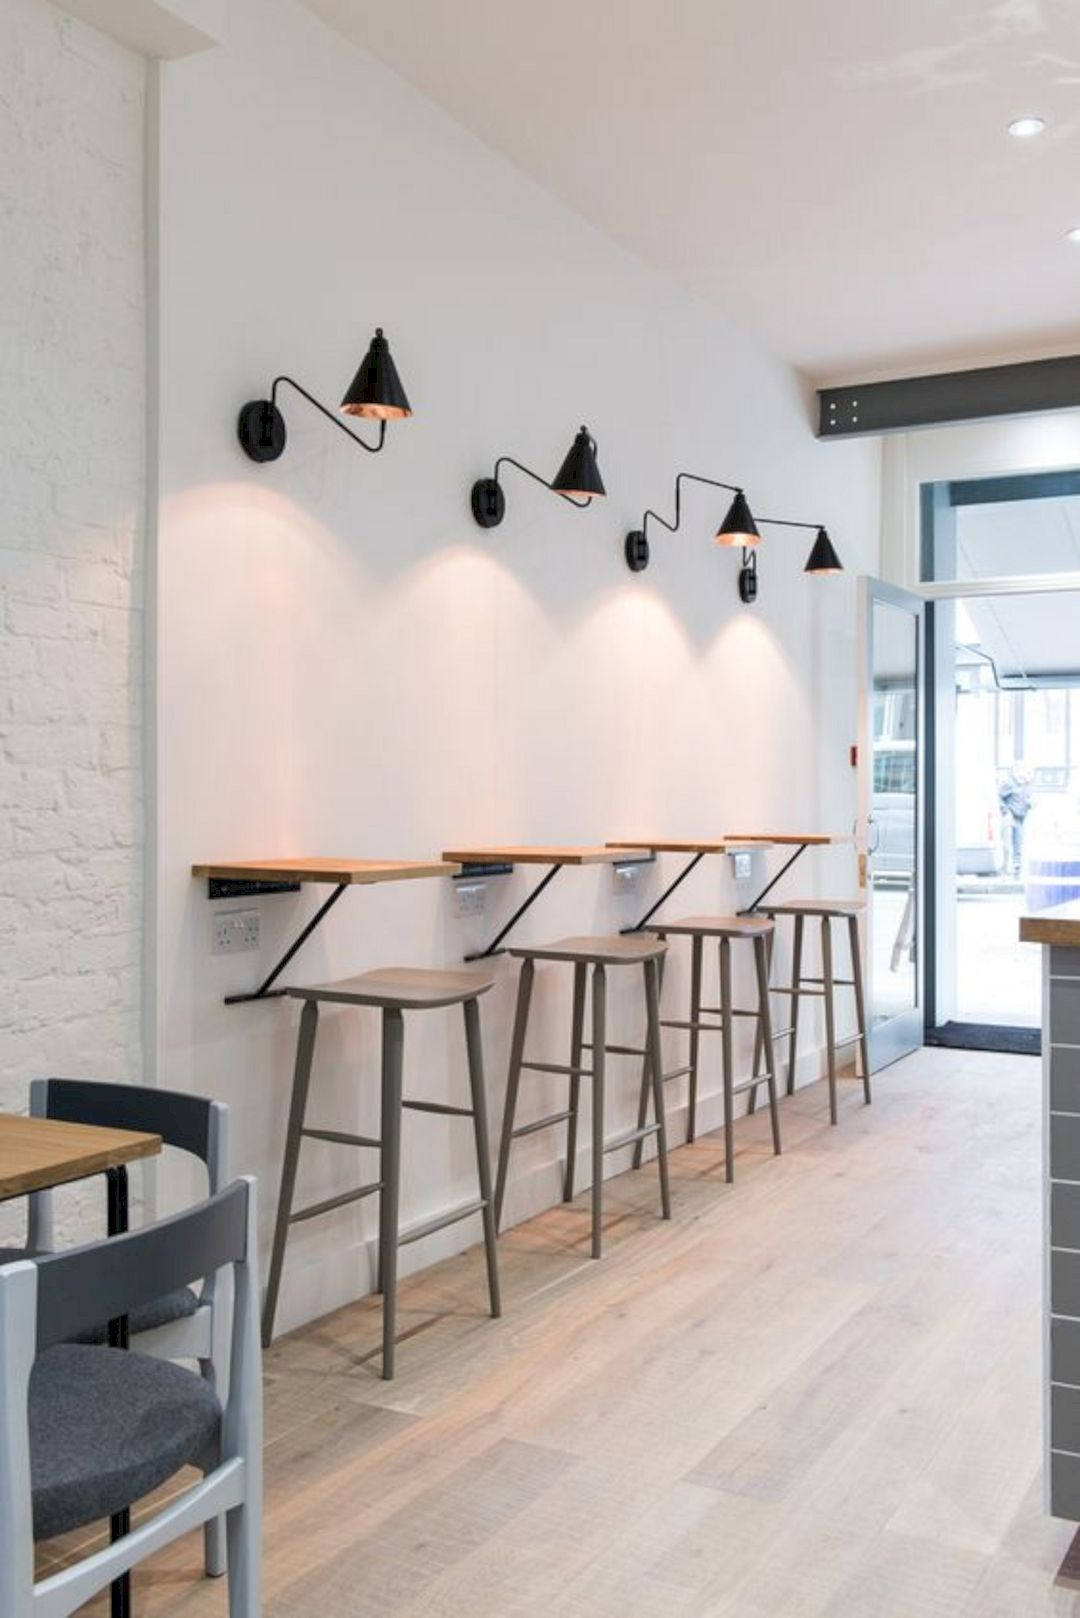 15 Cafe Shop Interior Design Ideas To Lure Customers Cafe